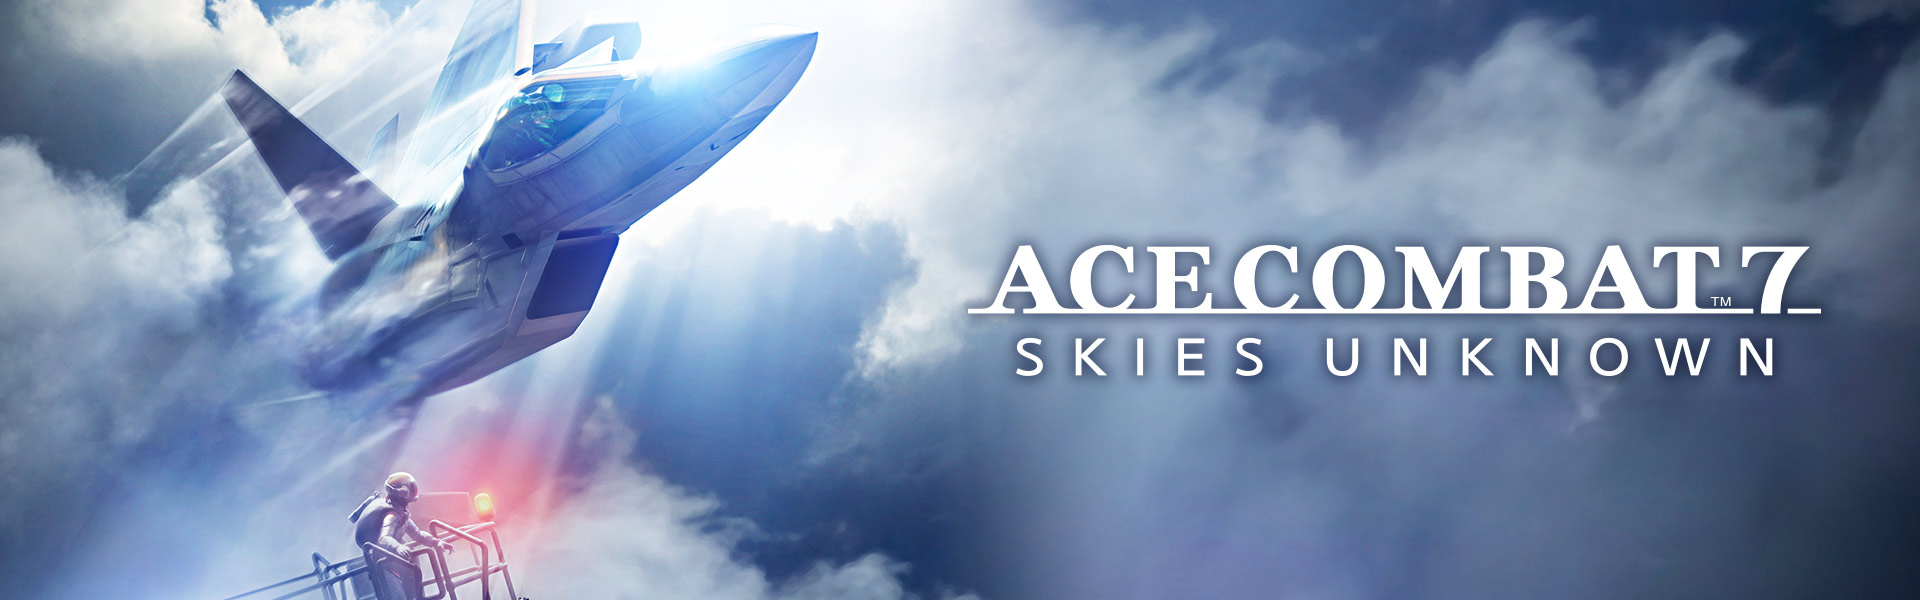 ACE COMBAT™ 7: SKIES UNKNOWN, Kampfjet, der durch Wolken fliegt